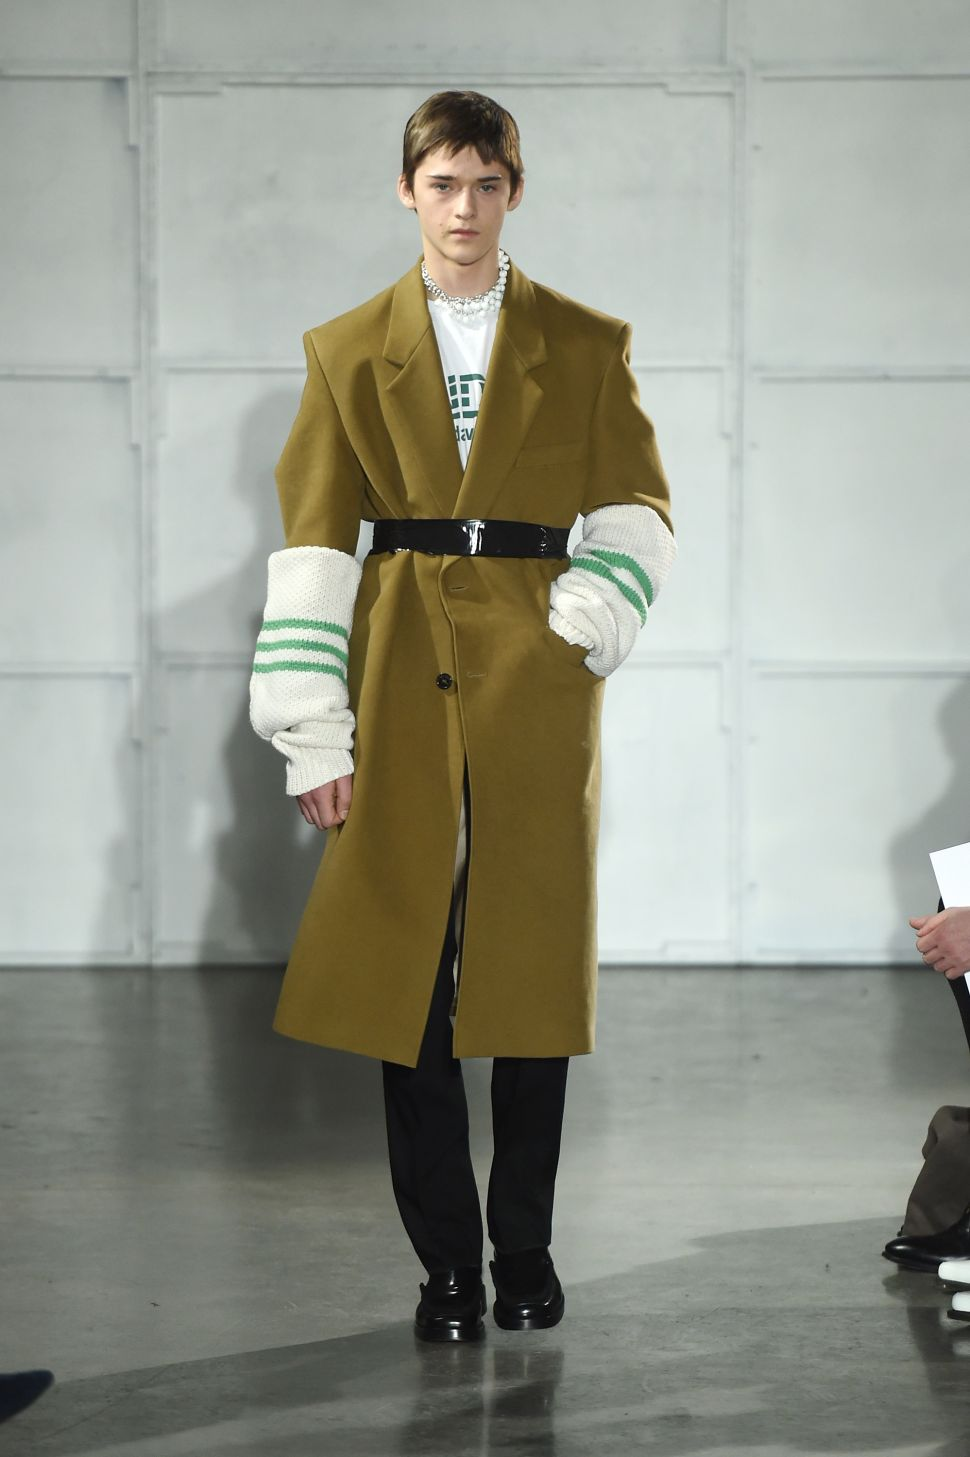 Raf Simons Graces NYC With Graphic Duct Tape and Arm Warmers